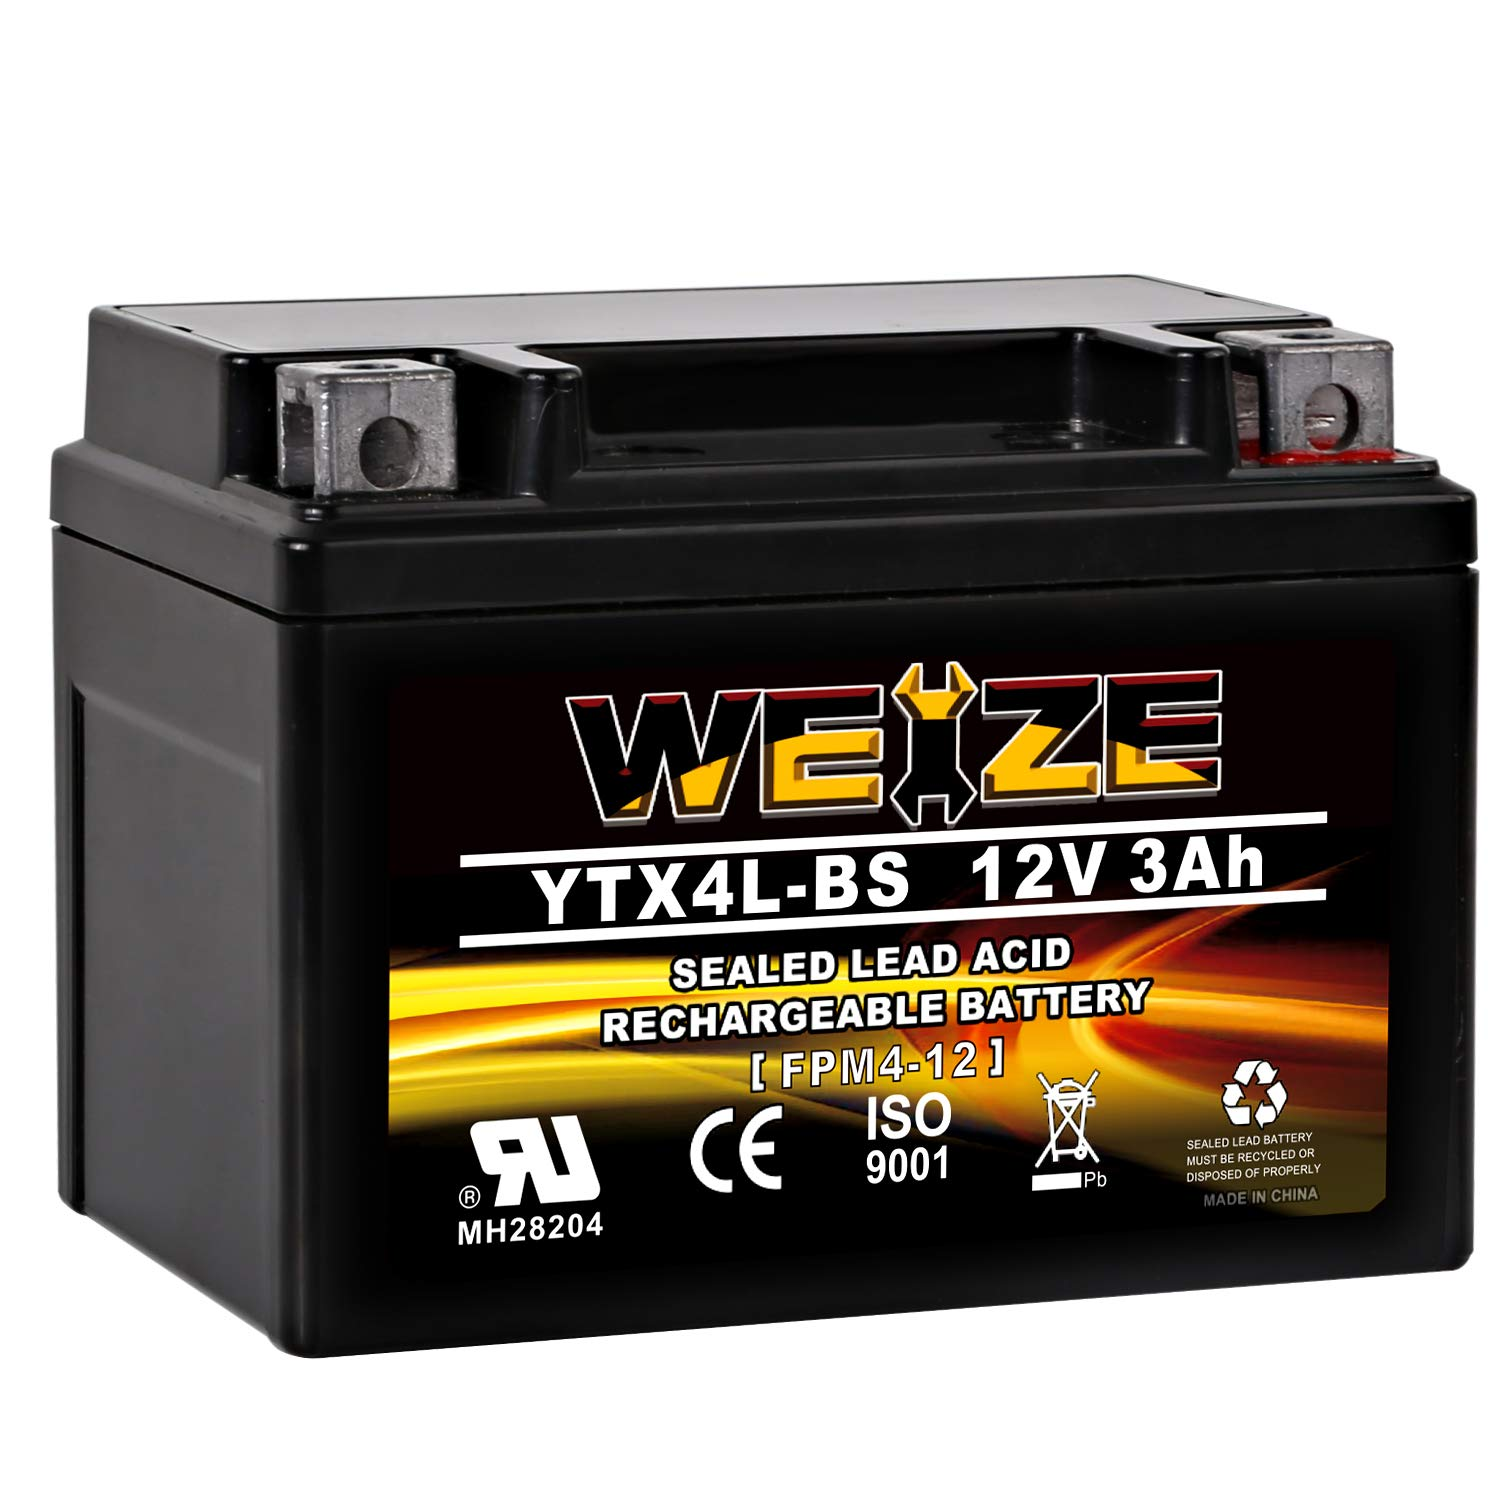 Weize YTX4L BS Motorcycle Battery ETX4L-BS High Performance - Rechargeable - Sealed AGM YTX4L-BS Scooter ATV Batteries Use For Honda Polaris Kawasaki Suzuki Yamaha by WEIZE